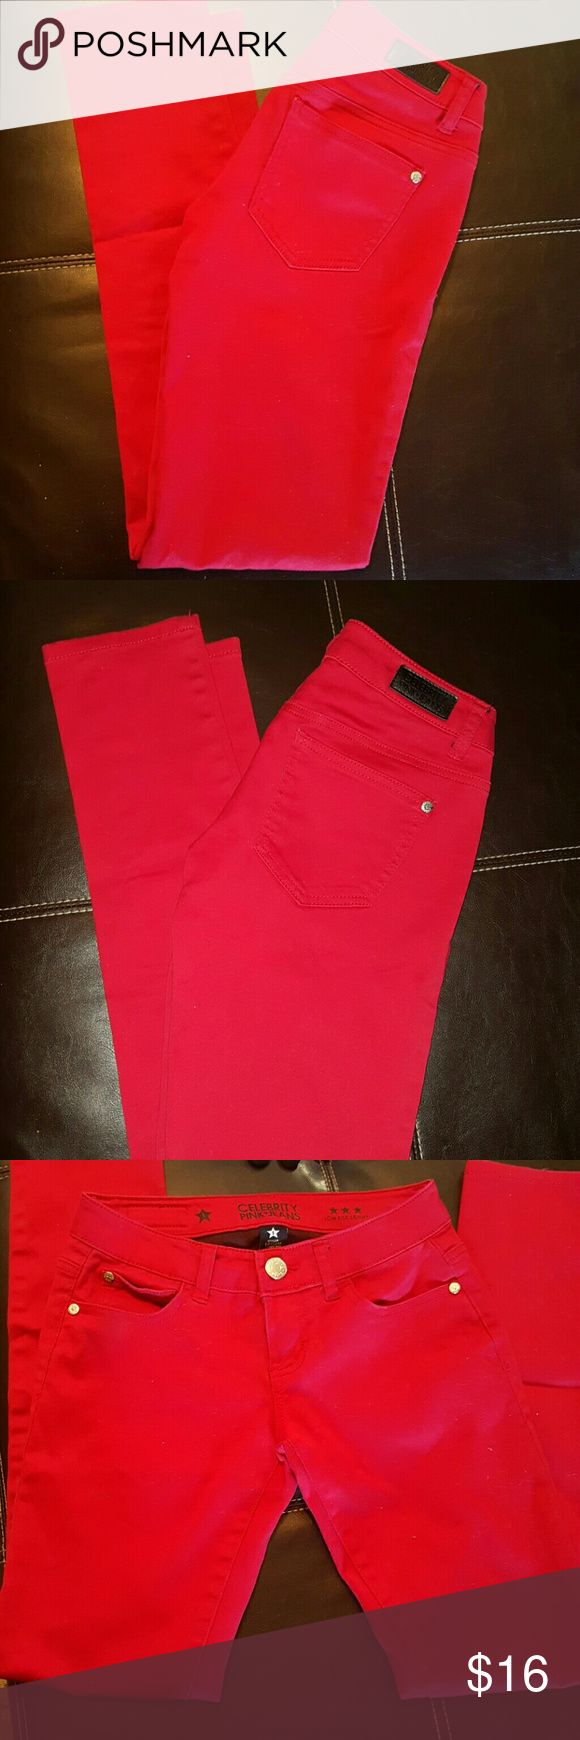 Red Skinny pants jeans low rise soft stretch 1 Great Condition Celebrity Pink Bold Bright Red Skinnies.  Ladies women's juniors 1 small  Top rated  Fast shipper Bundle & Save B2 Celebrity Pink Jeans Skinny